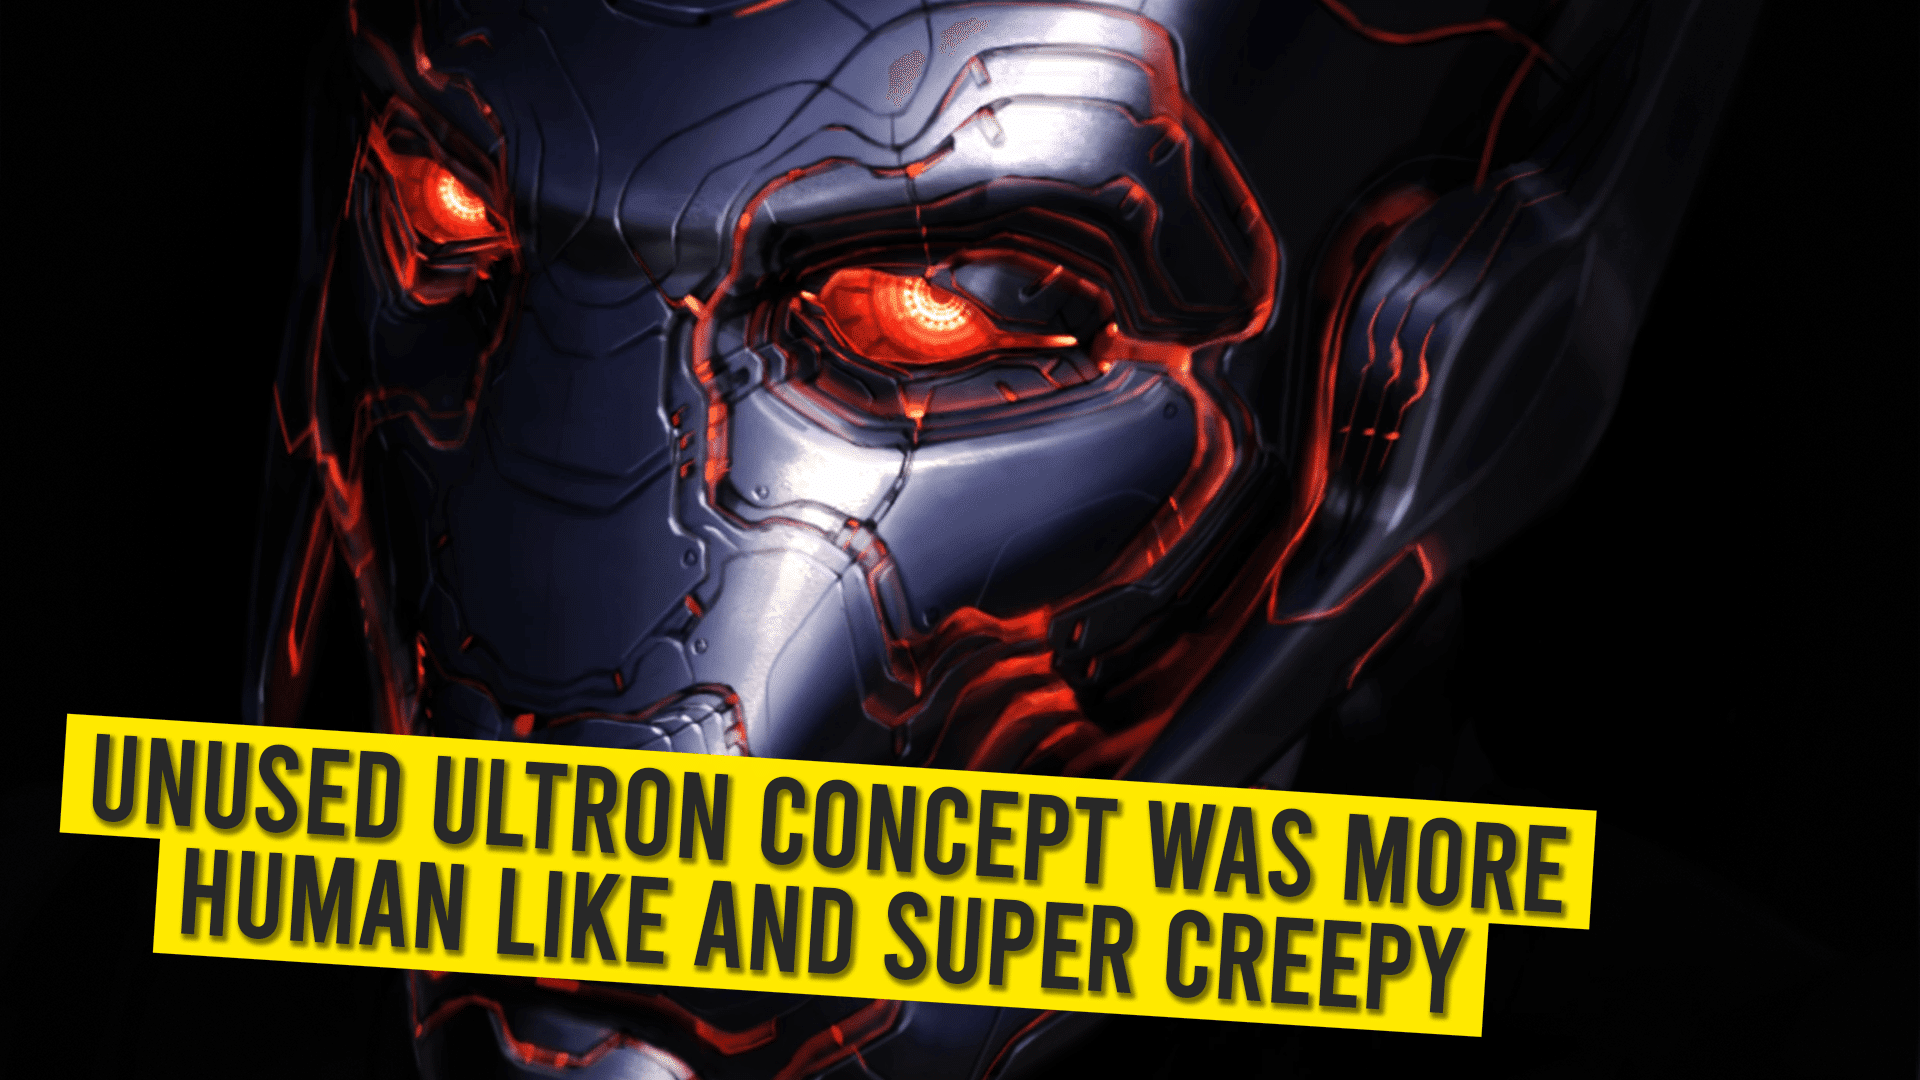 Unused Ultron Concept